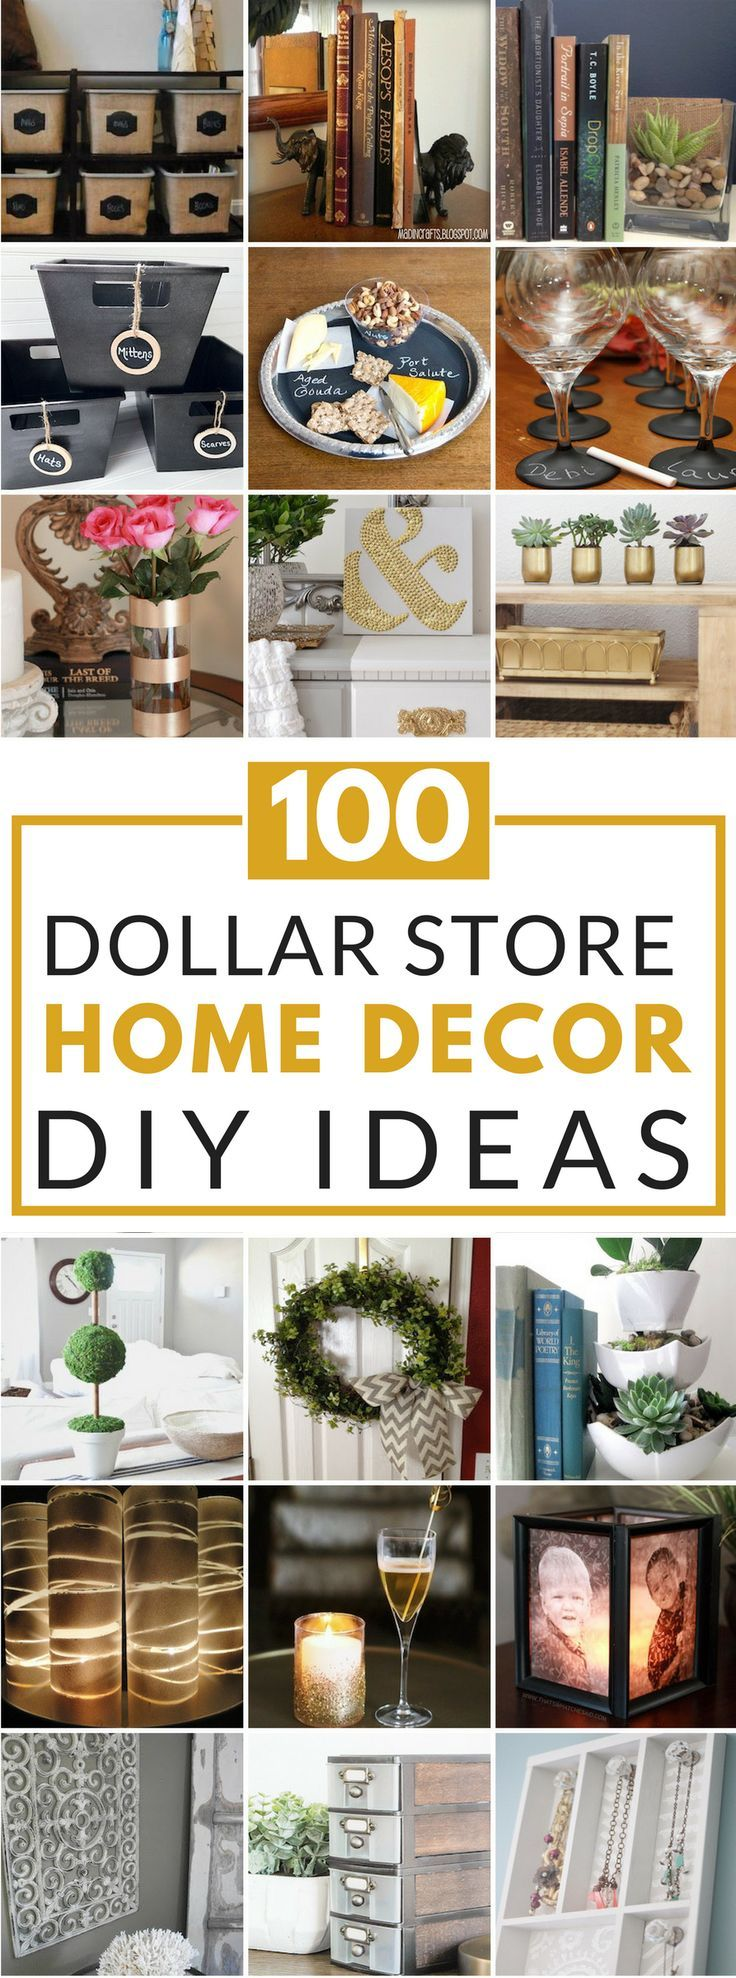 25 best home decor store ideas on pinterest - Dollar store home decor ideas pict ...